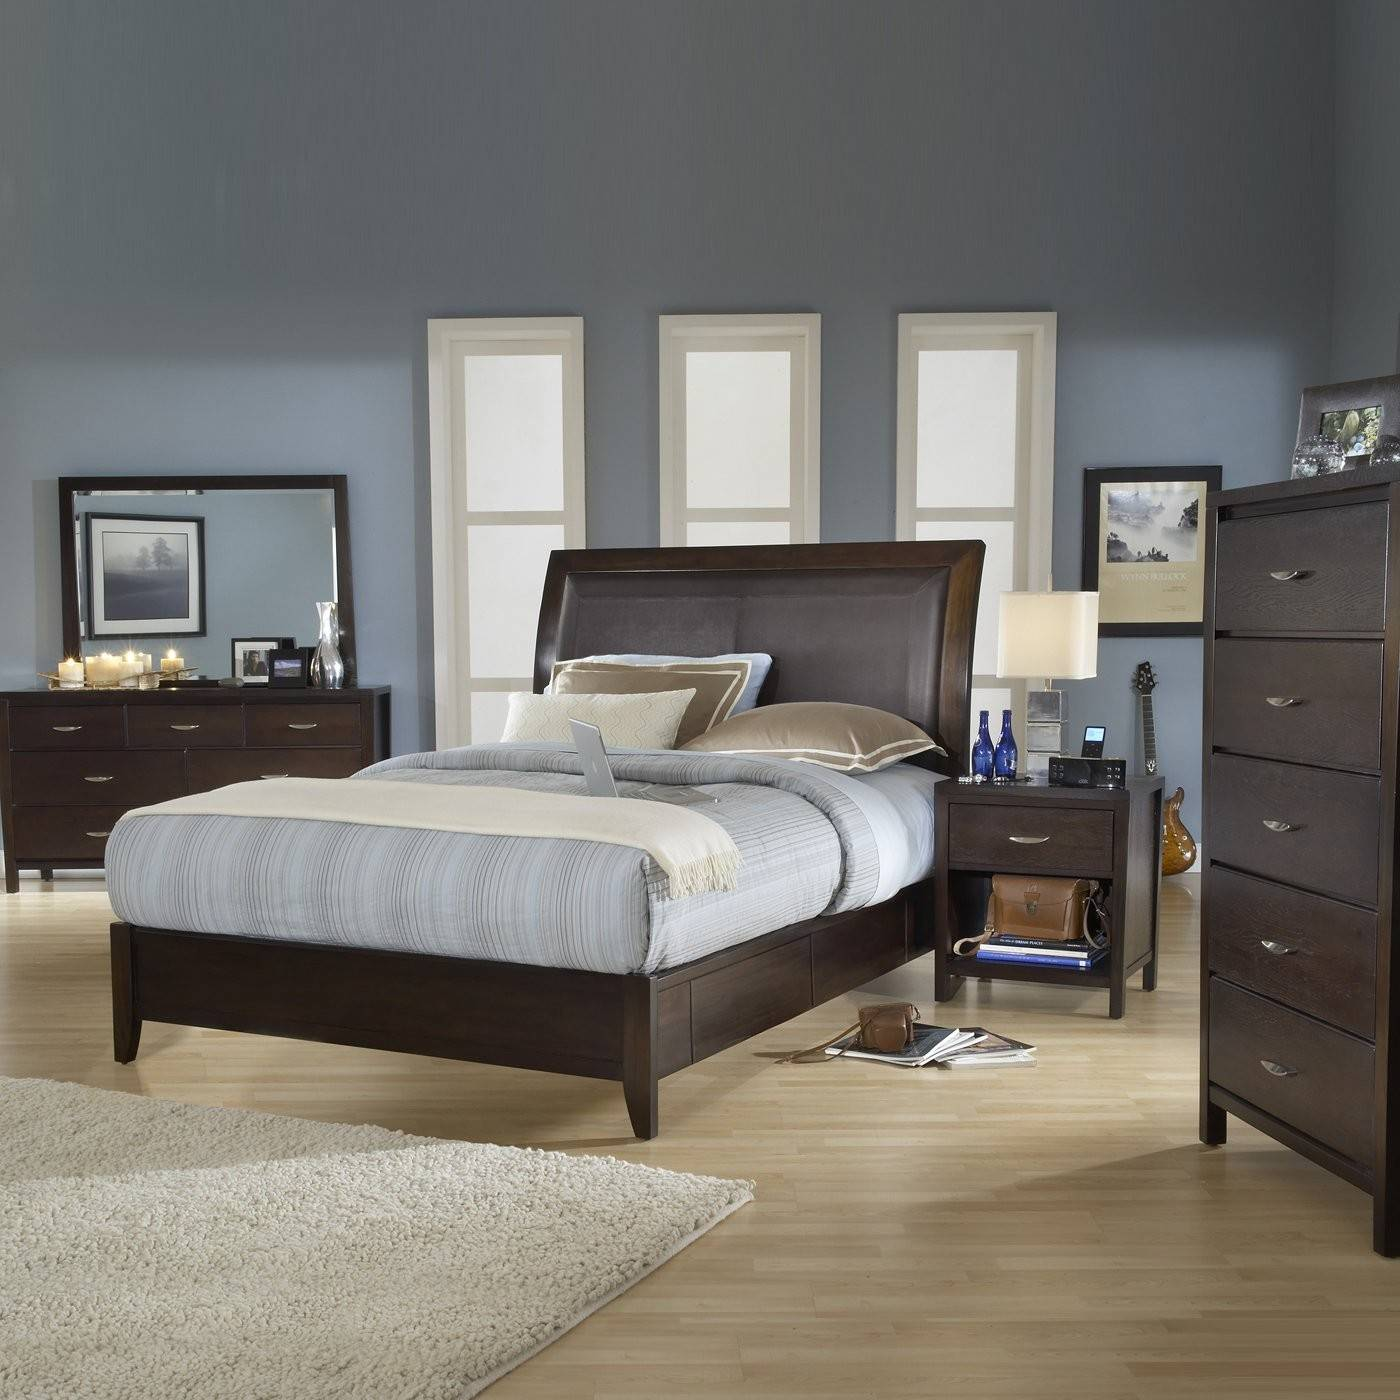 Modus Furniture Urban Loft Storage Panel Bedroom Set Atg Stores